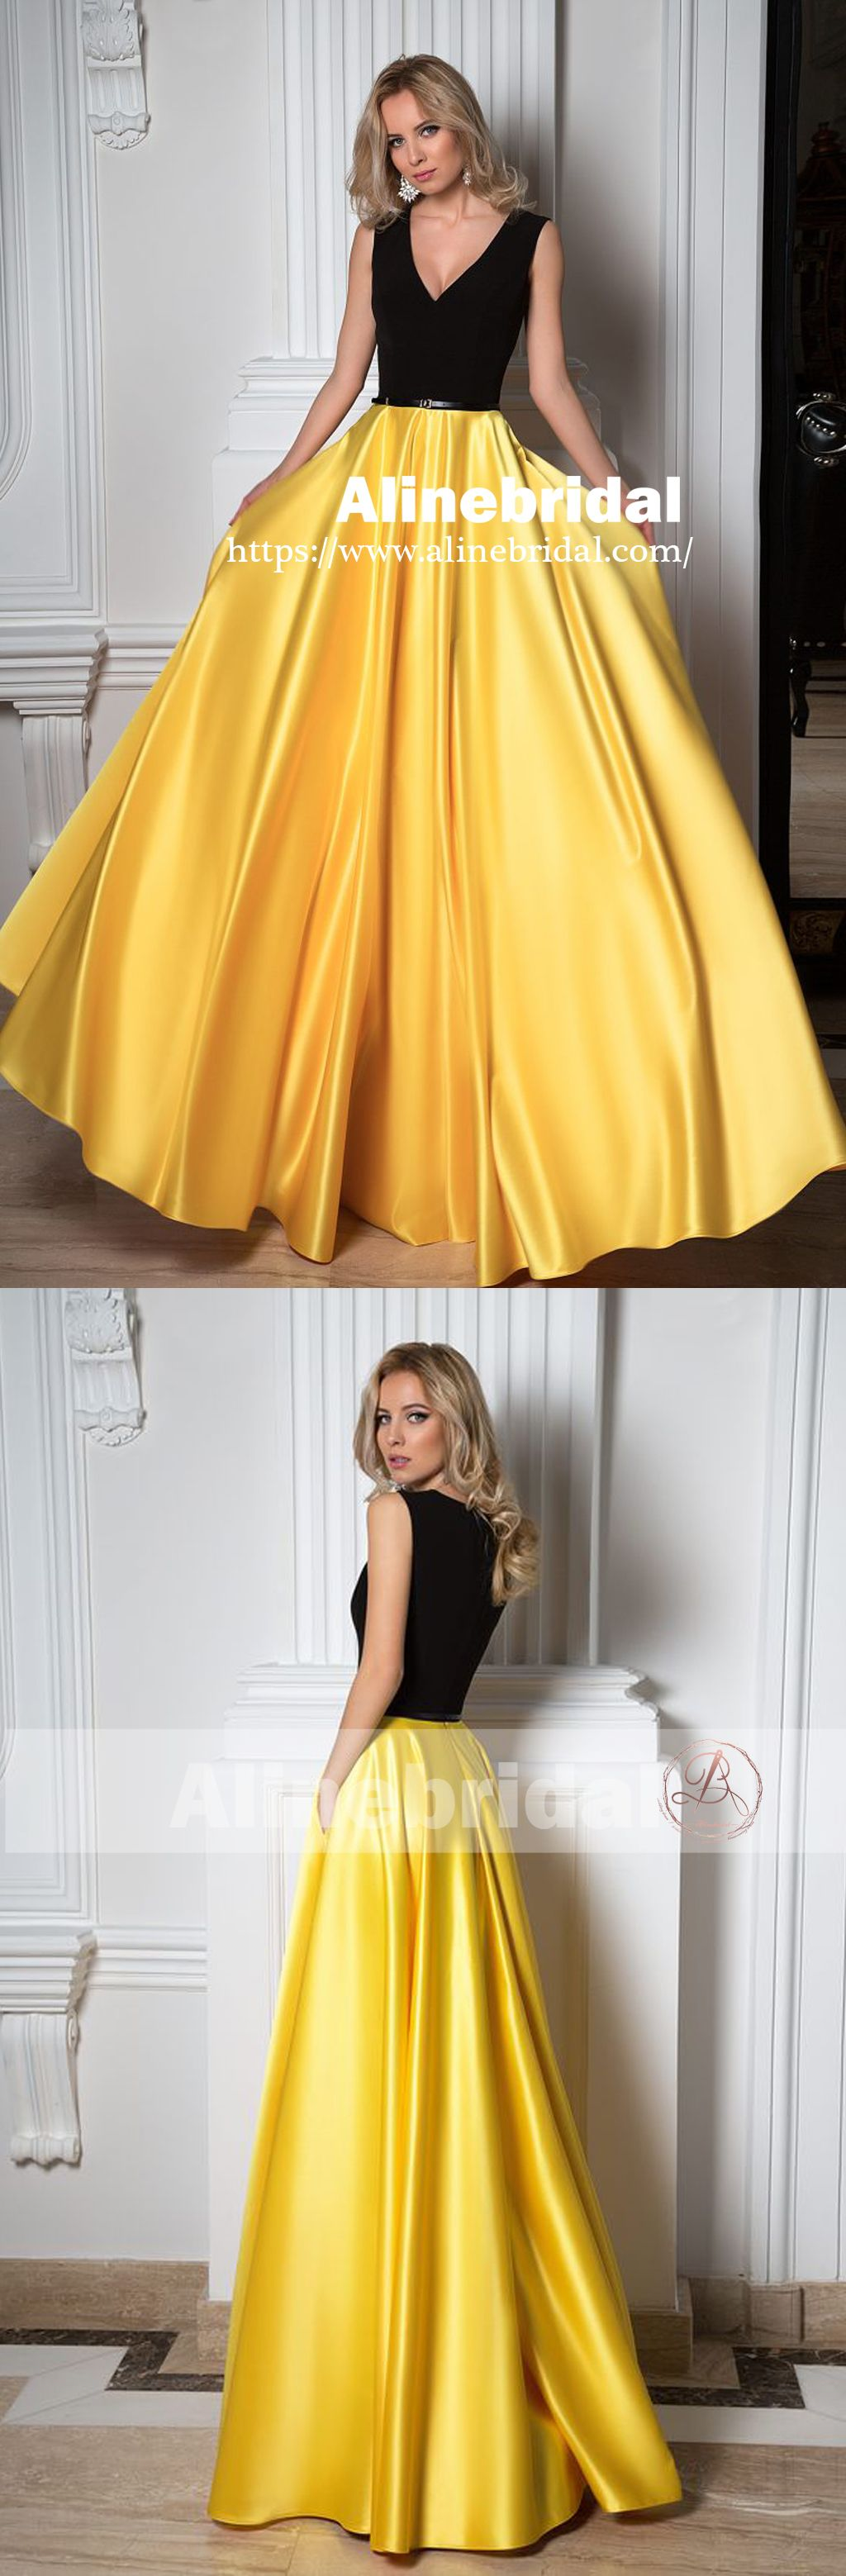 Simple black and yellow charming vneck sleeveless floor length prom